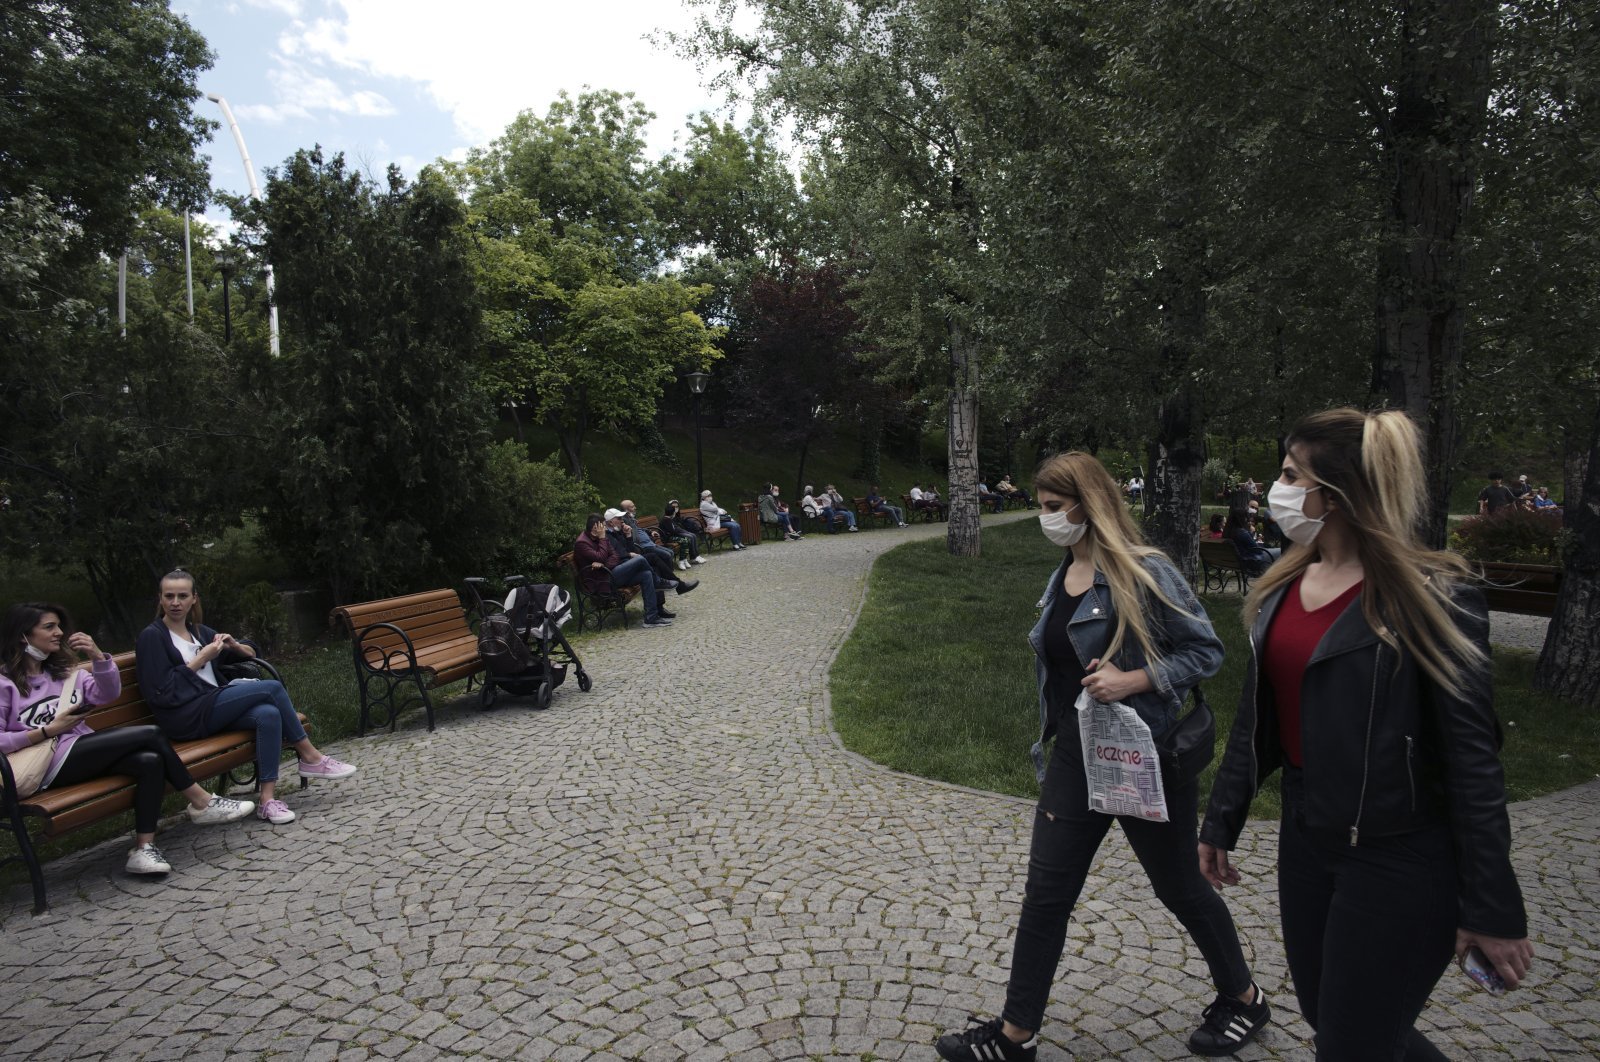 People visit Kuğulu public garden after the government lifted a series of restrictions imposed to fight the coronavirus pandemic, Ankara, Turkey, June 3, 2020. (AP Photo)